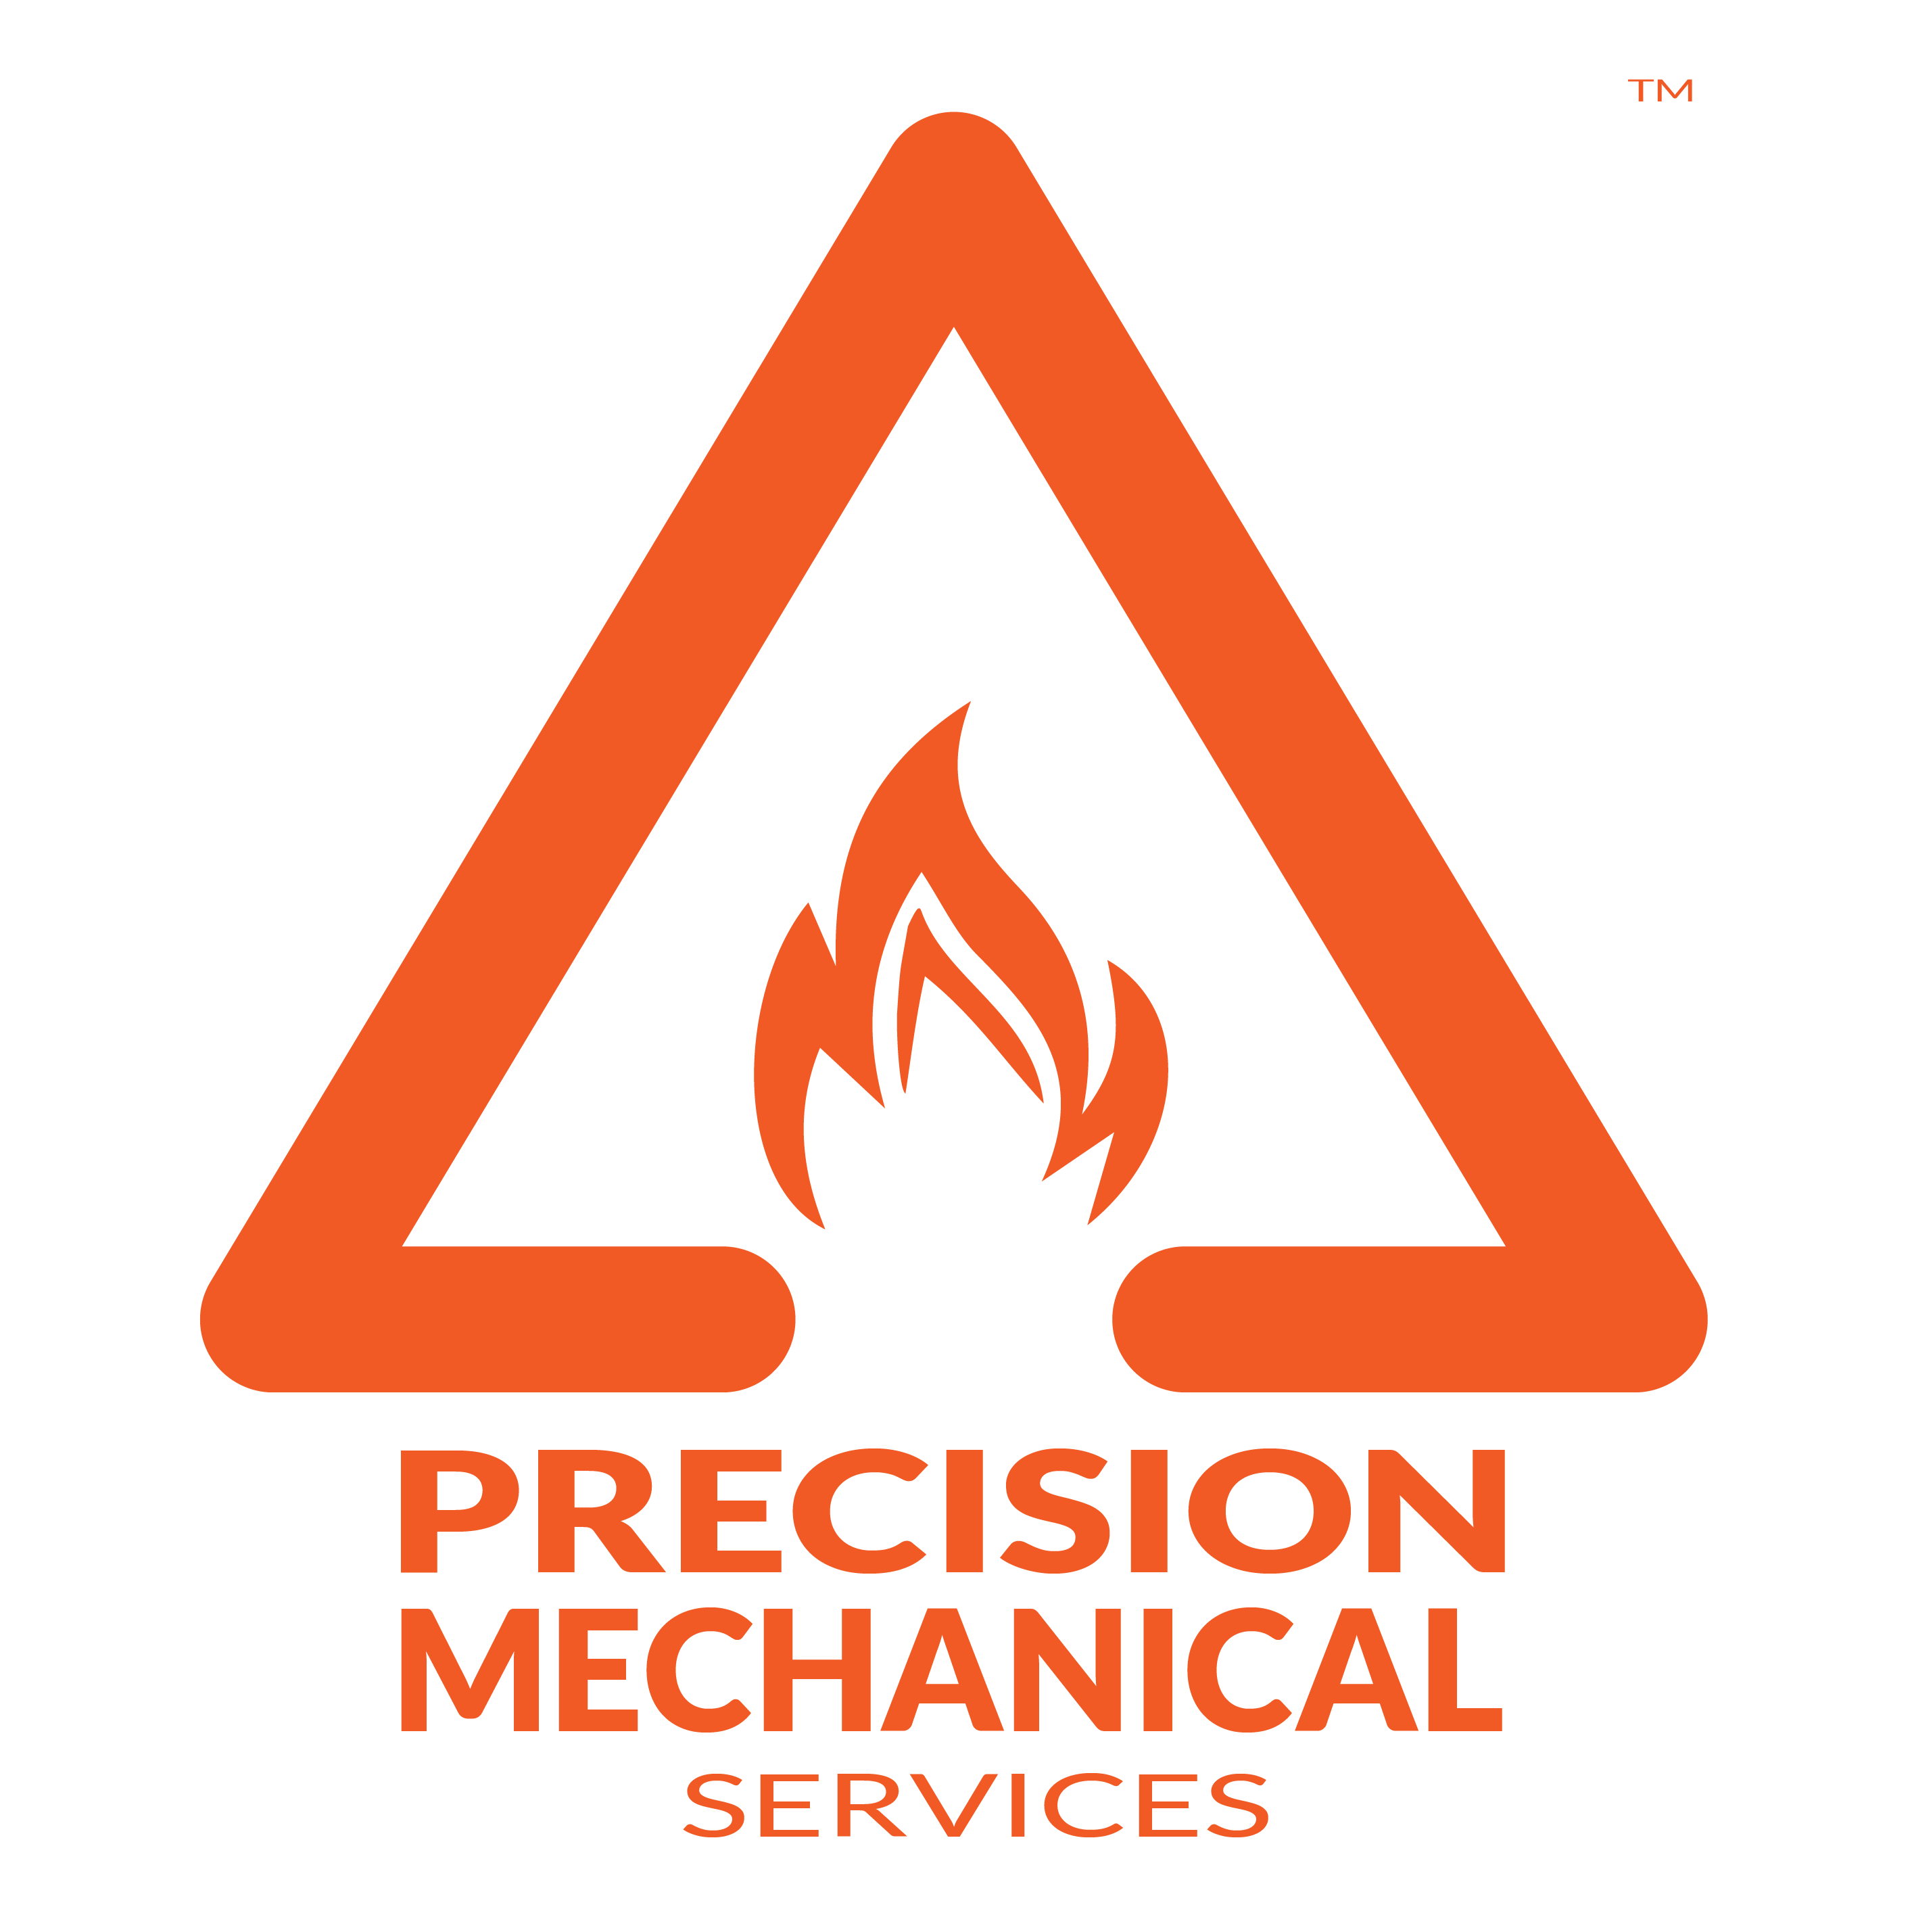 Precision Mechanical Services